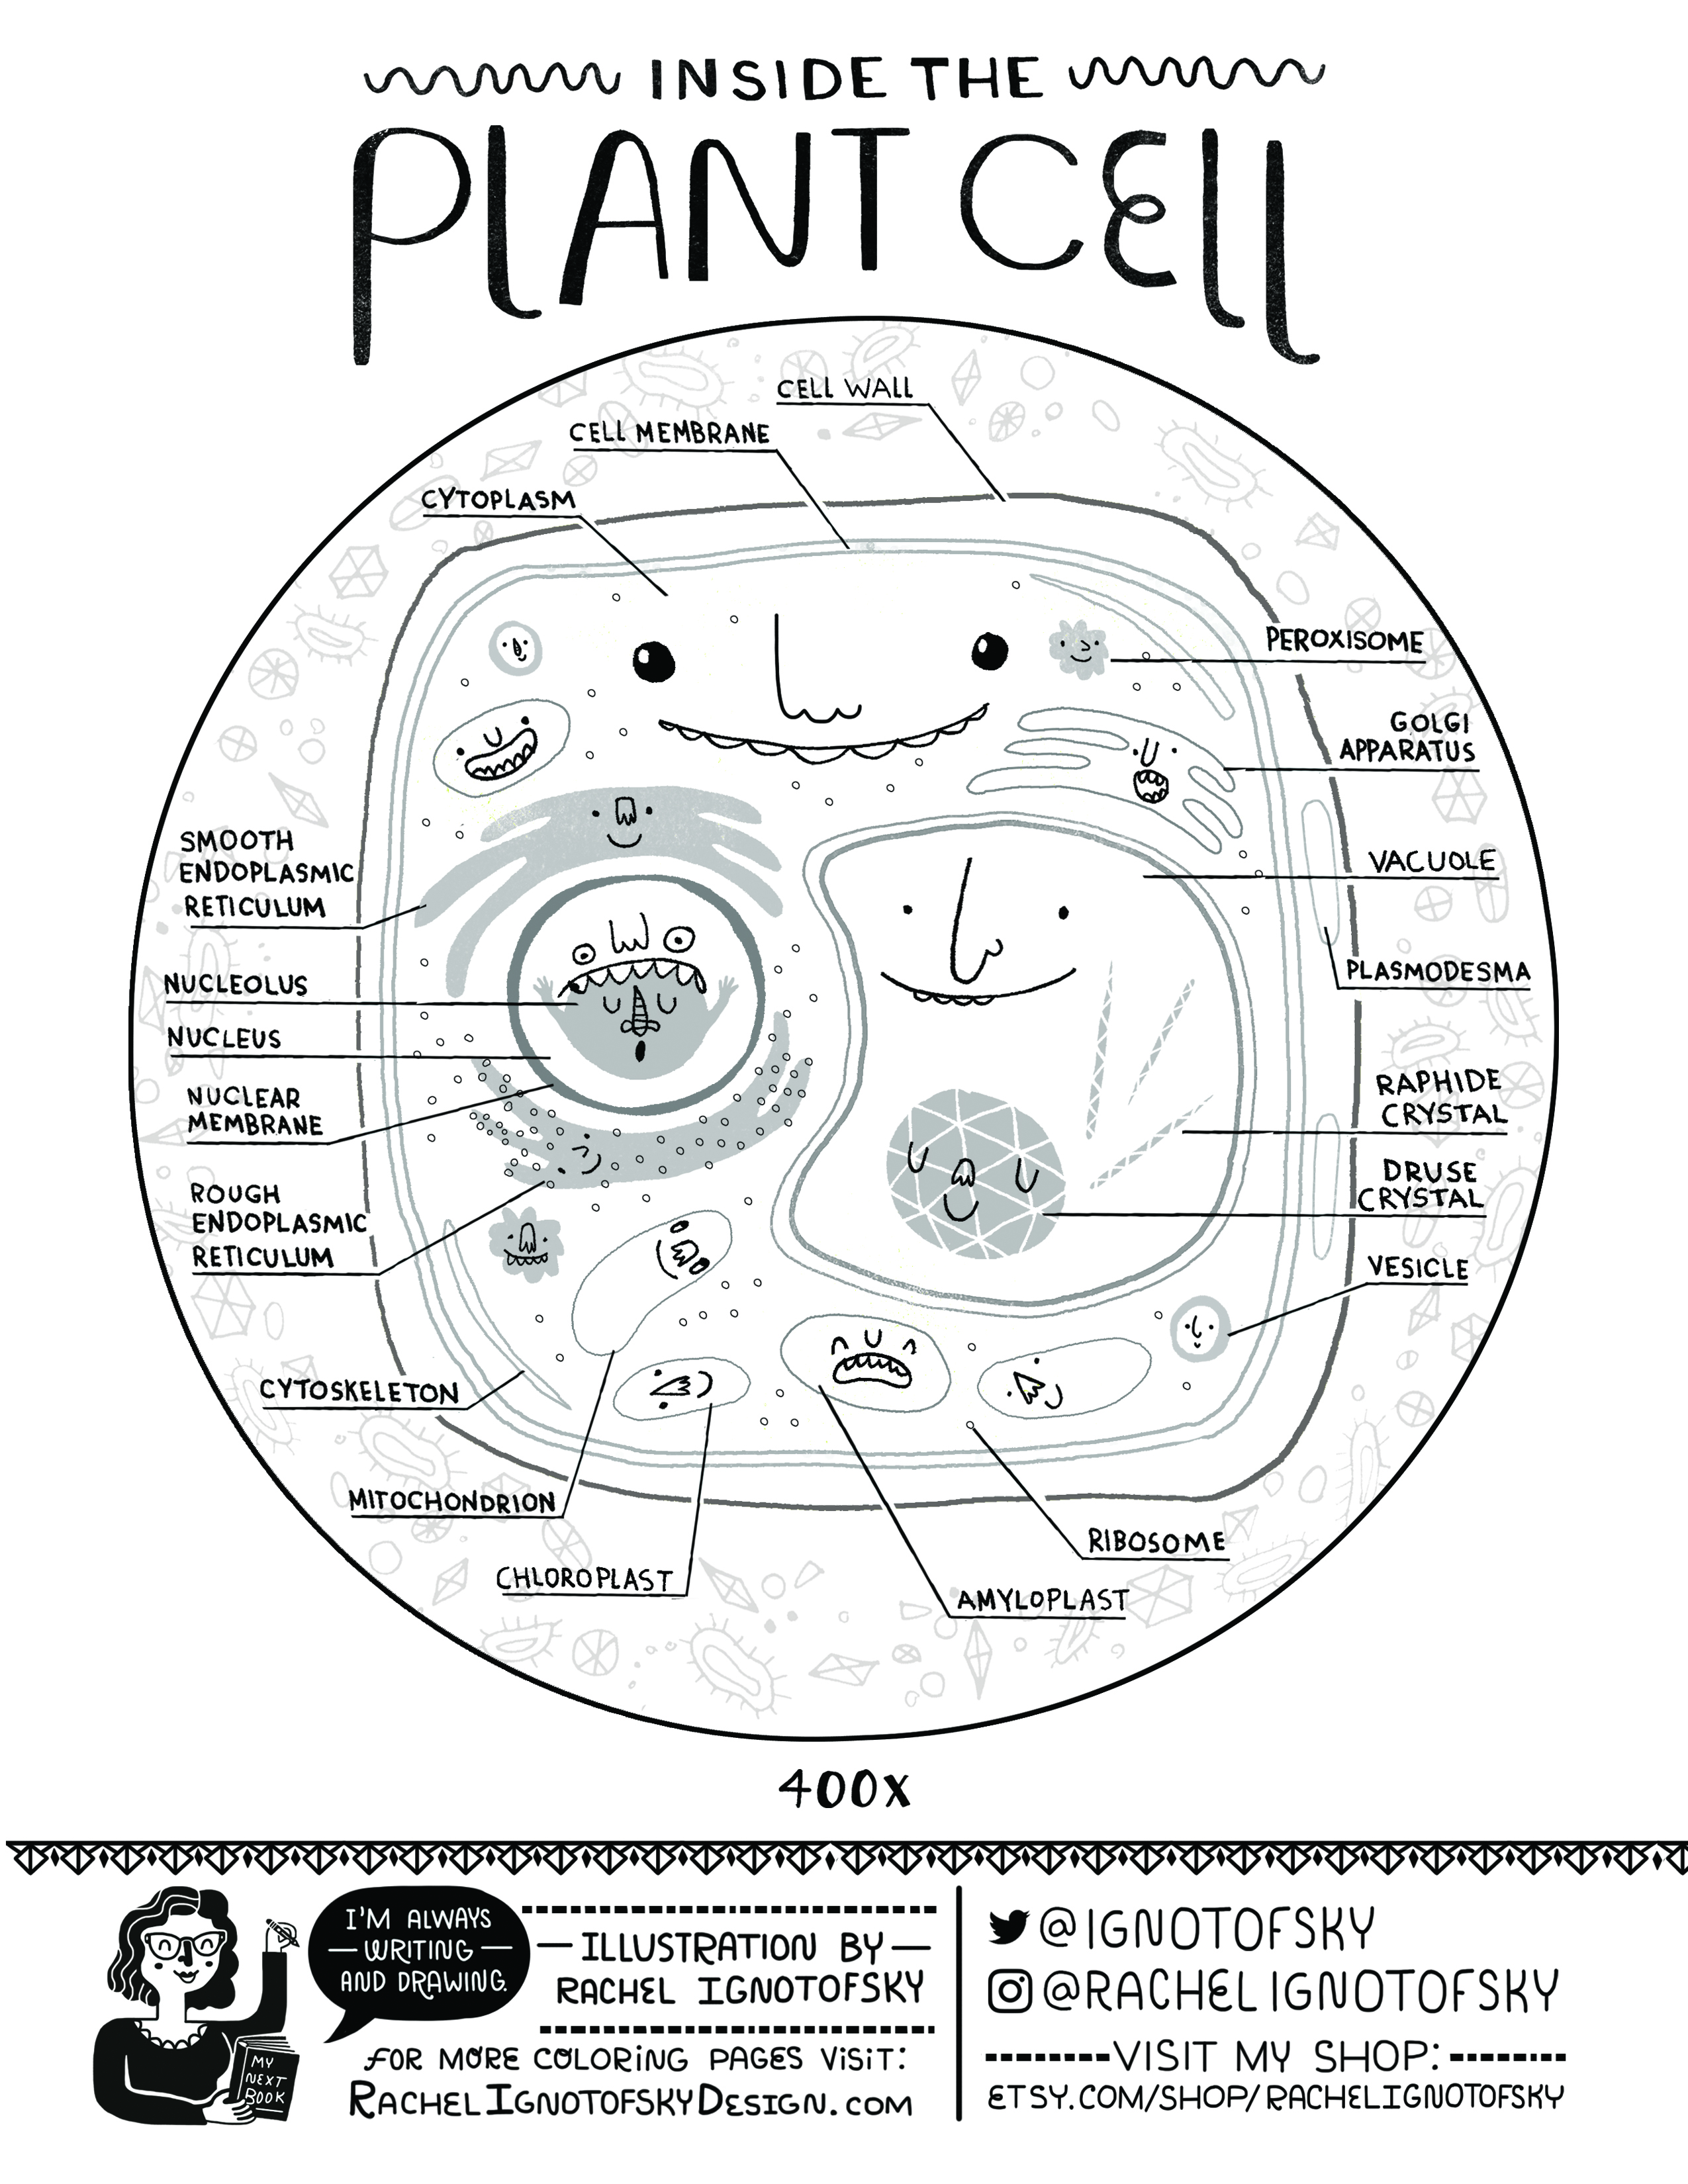 Inside the Plant Cell